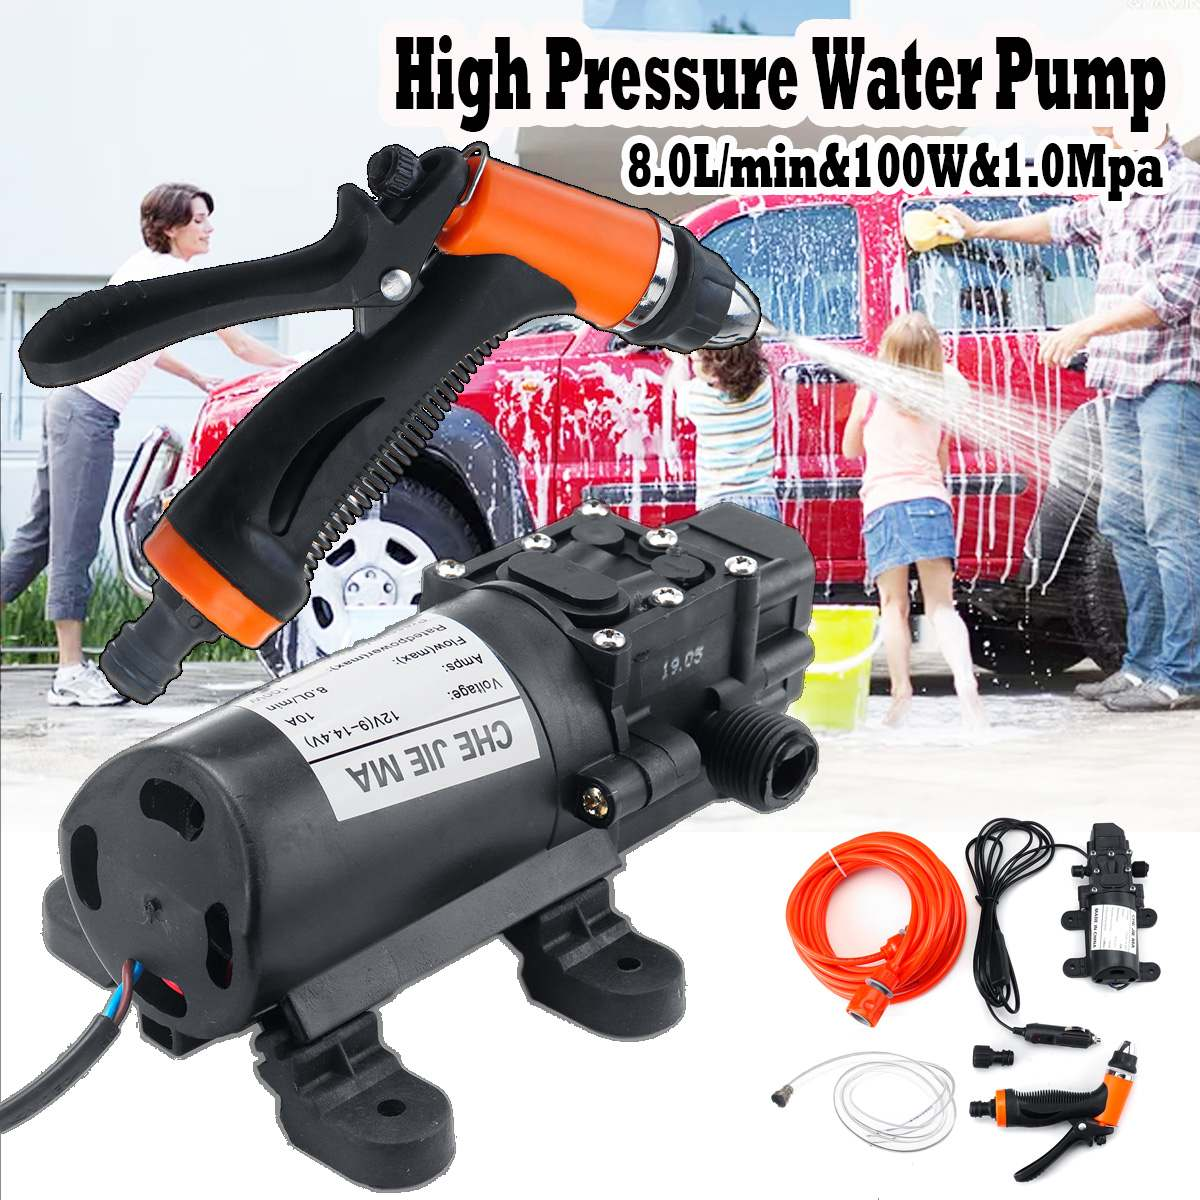 Car Washer Gun Pump High Pressure Cleaner Car Care 12V Portable Washing Machine Electric Cleaning Auto Device Self-priming Tool(China)